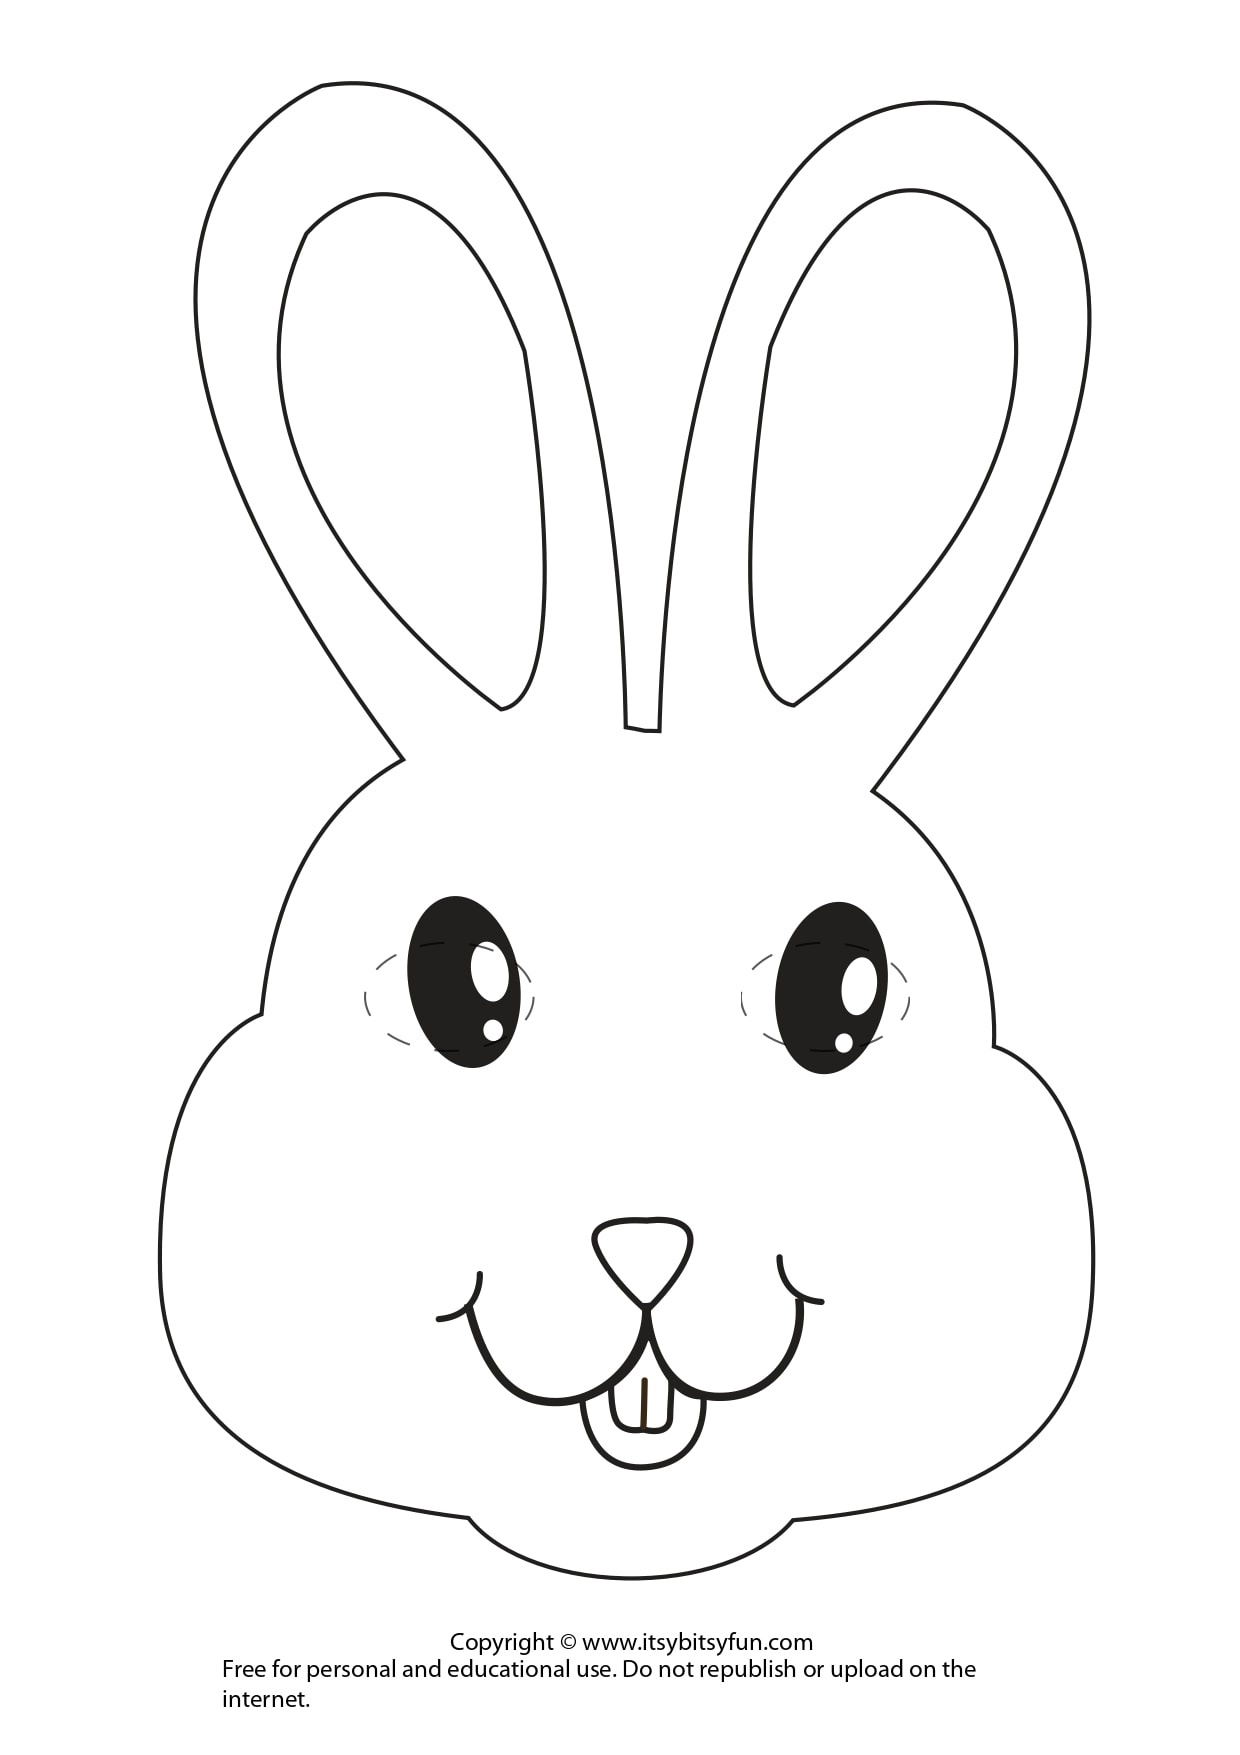 Easter Masks - Bunny Rabbit And Chick Template - Itsy Bitsy Fun - Free Printable Bunny Templates